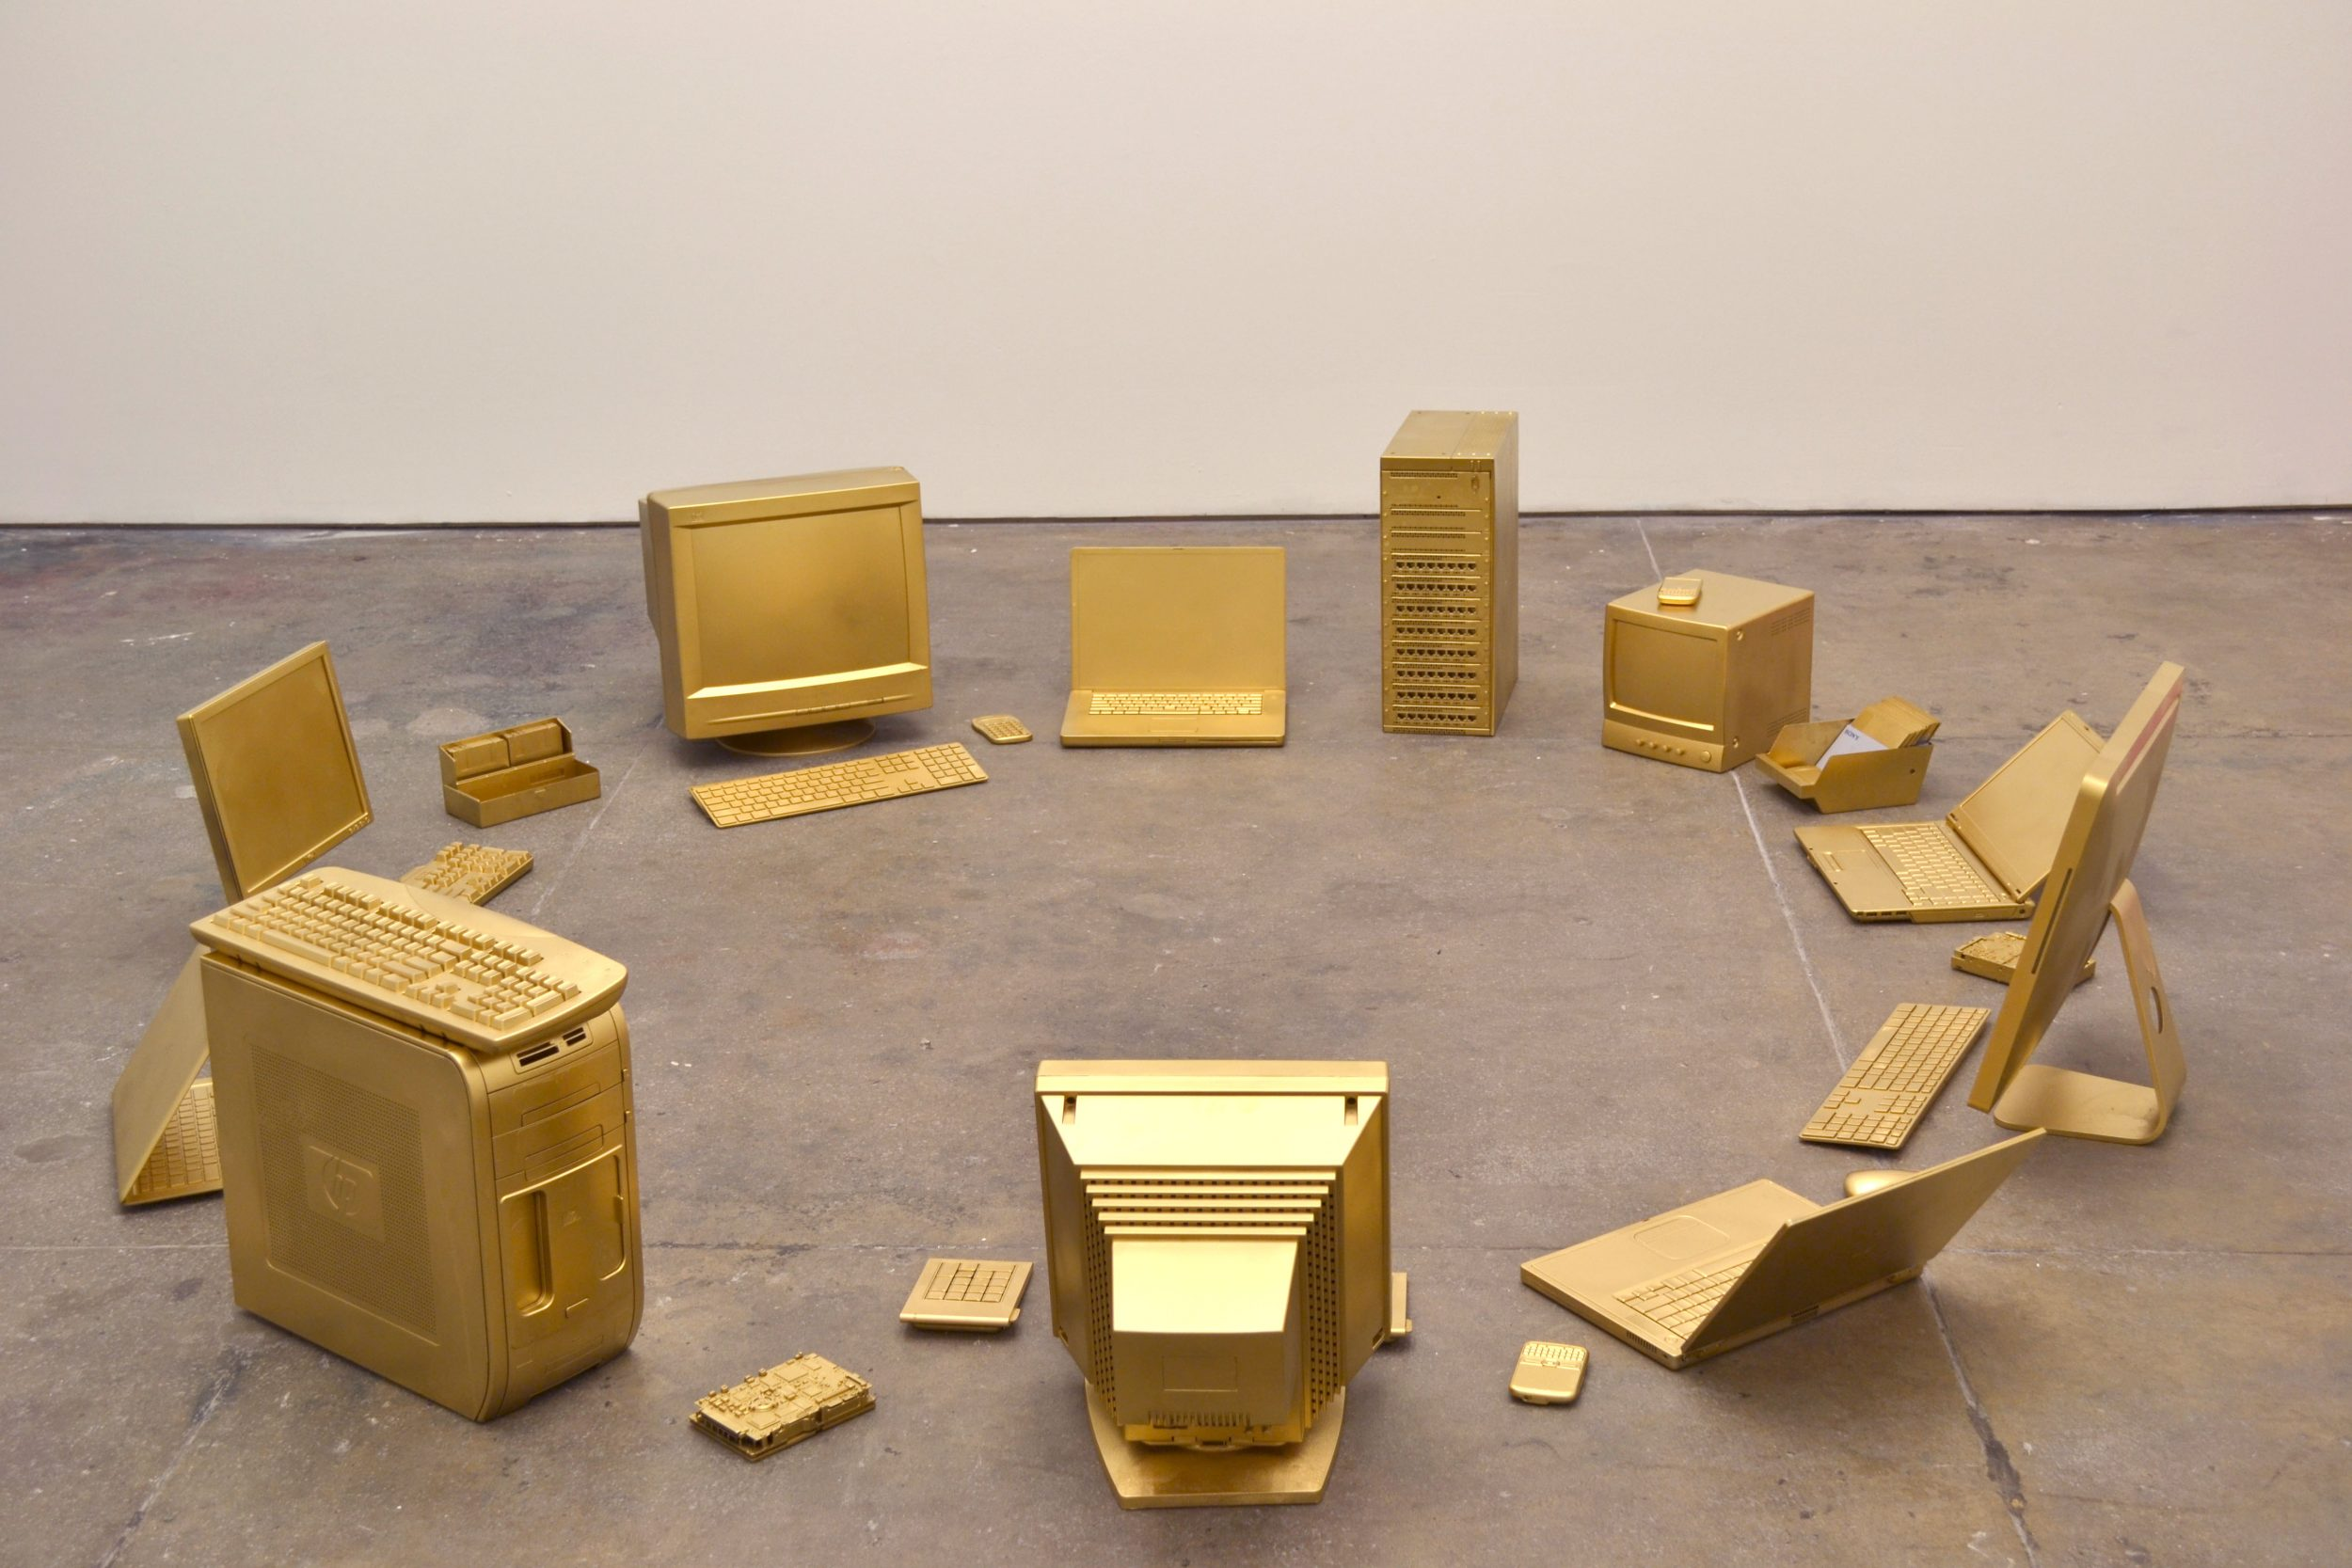 Marisa Olson, Time Capsule, Installation, Web Source: https://www.are.na/marisa-olson/time-capsules